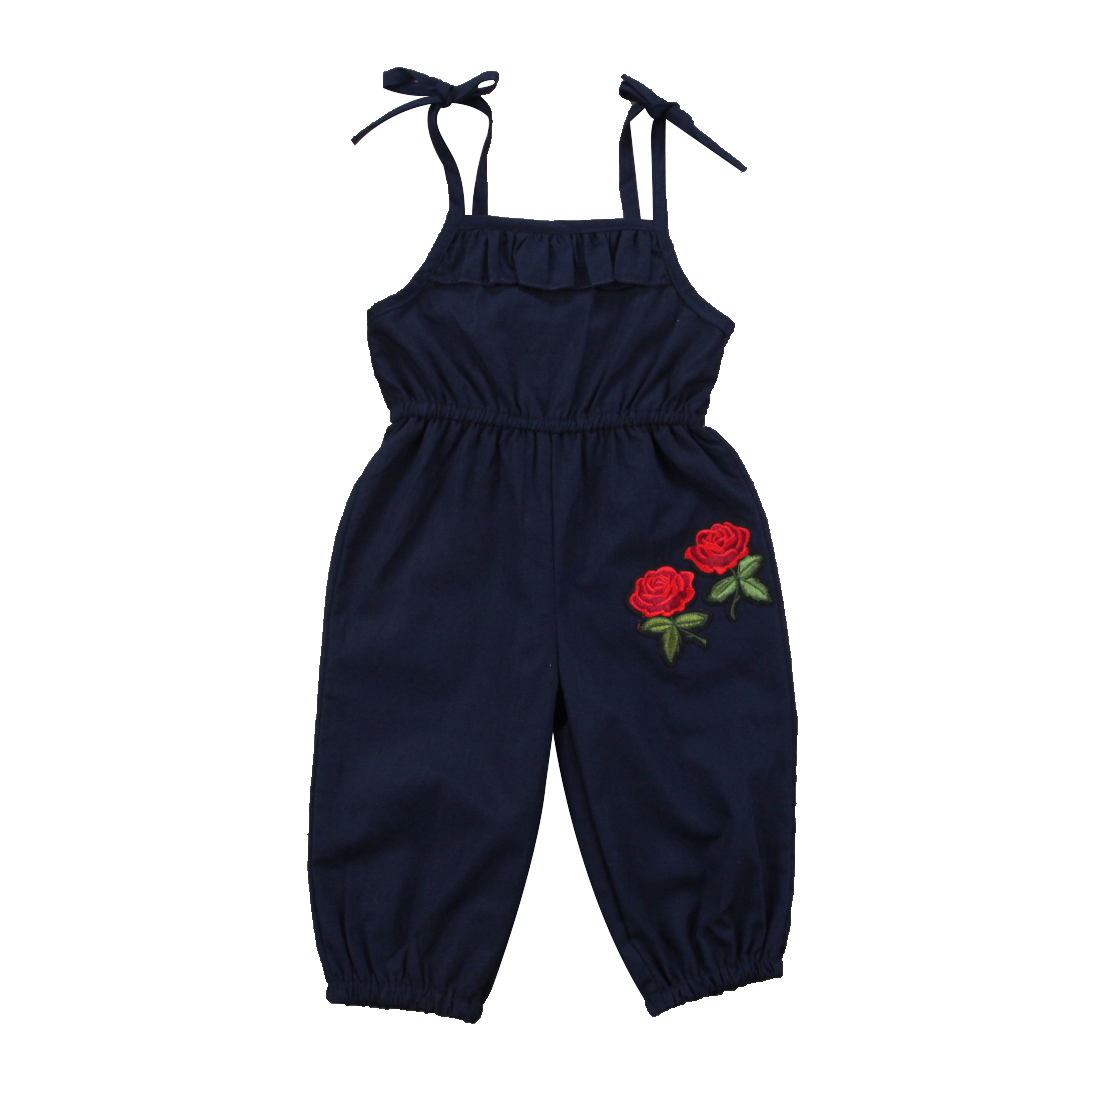 Strap Kids Baby Girls Embroideried Floral Rompers Sleeveless Blue Summer Romper Jumpsuit Playsuit Outfit Clothes 1-6Y цена